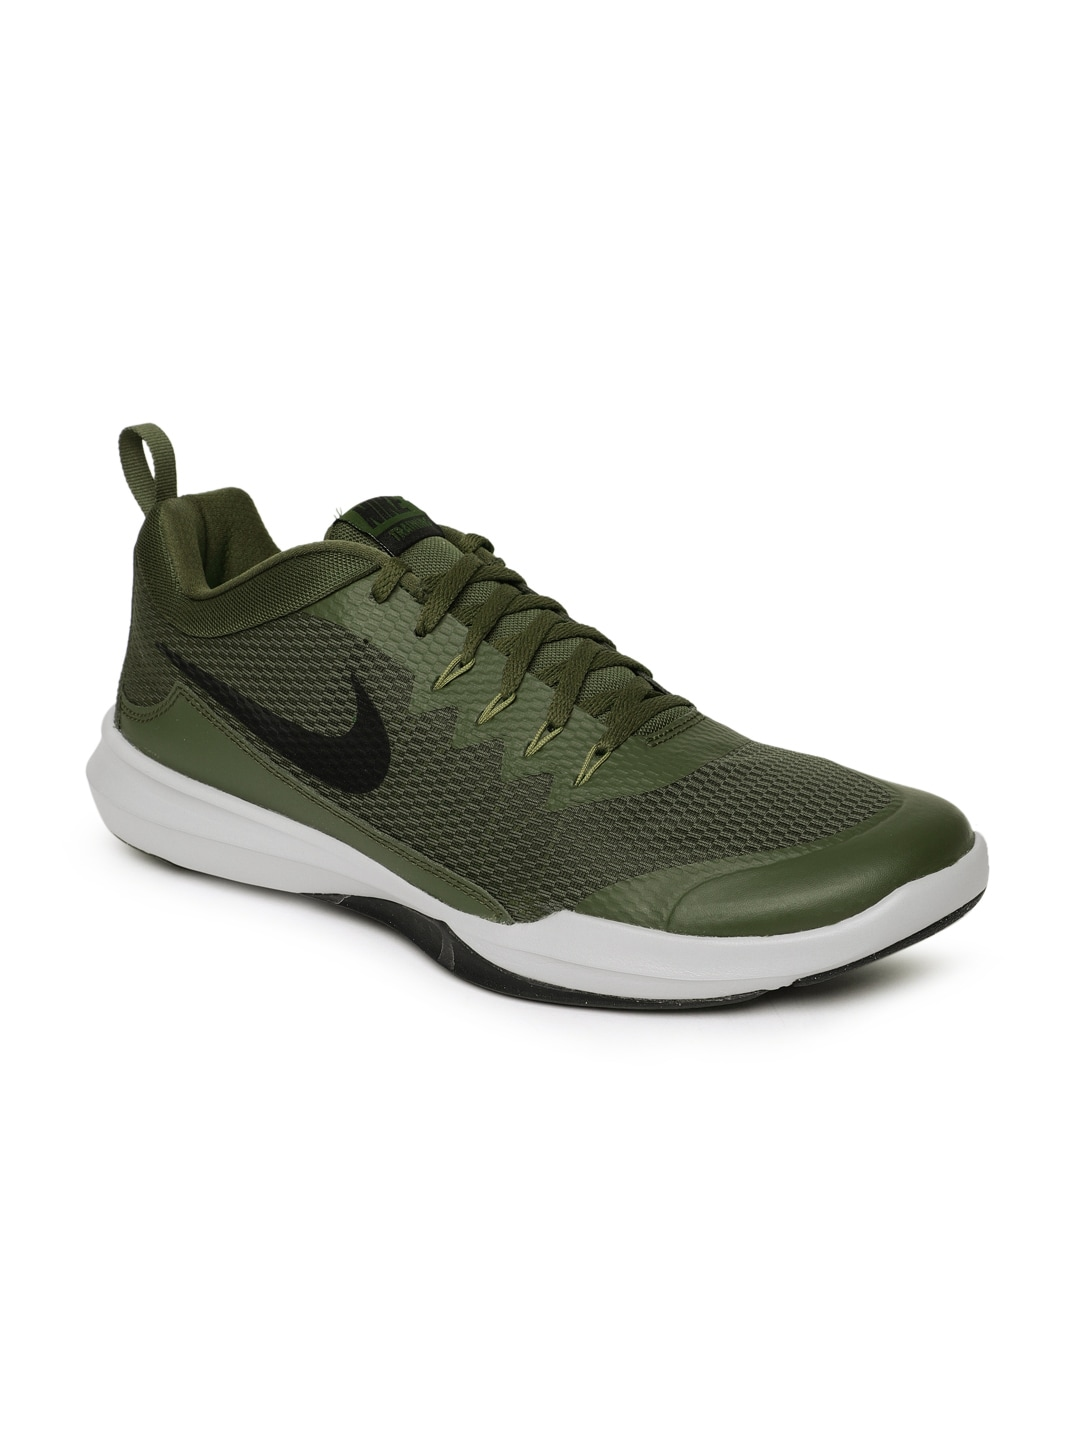 95194f1f64bd Nike Shoes for Men - Buy Men s Nike Shoes Online